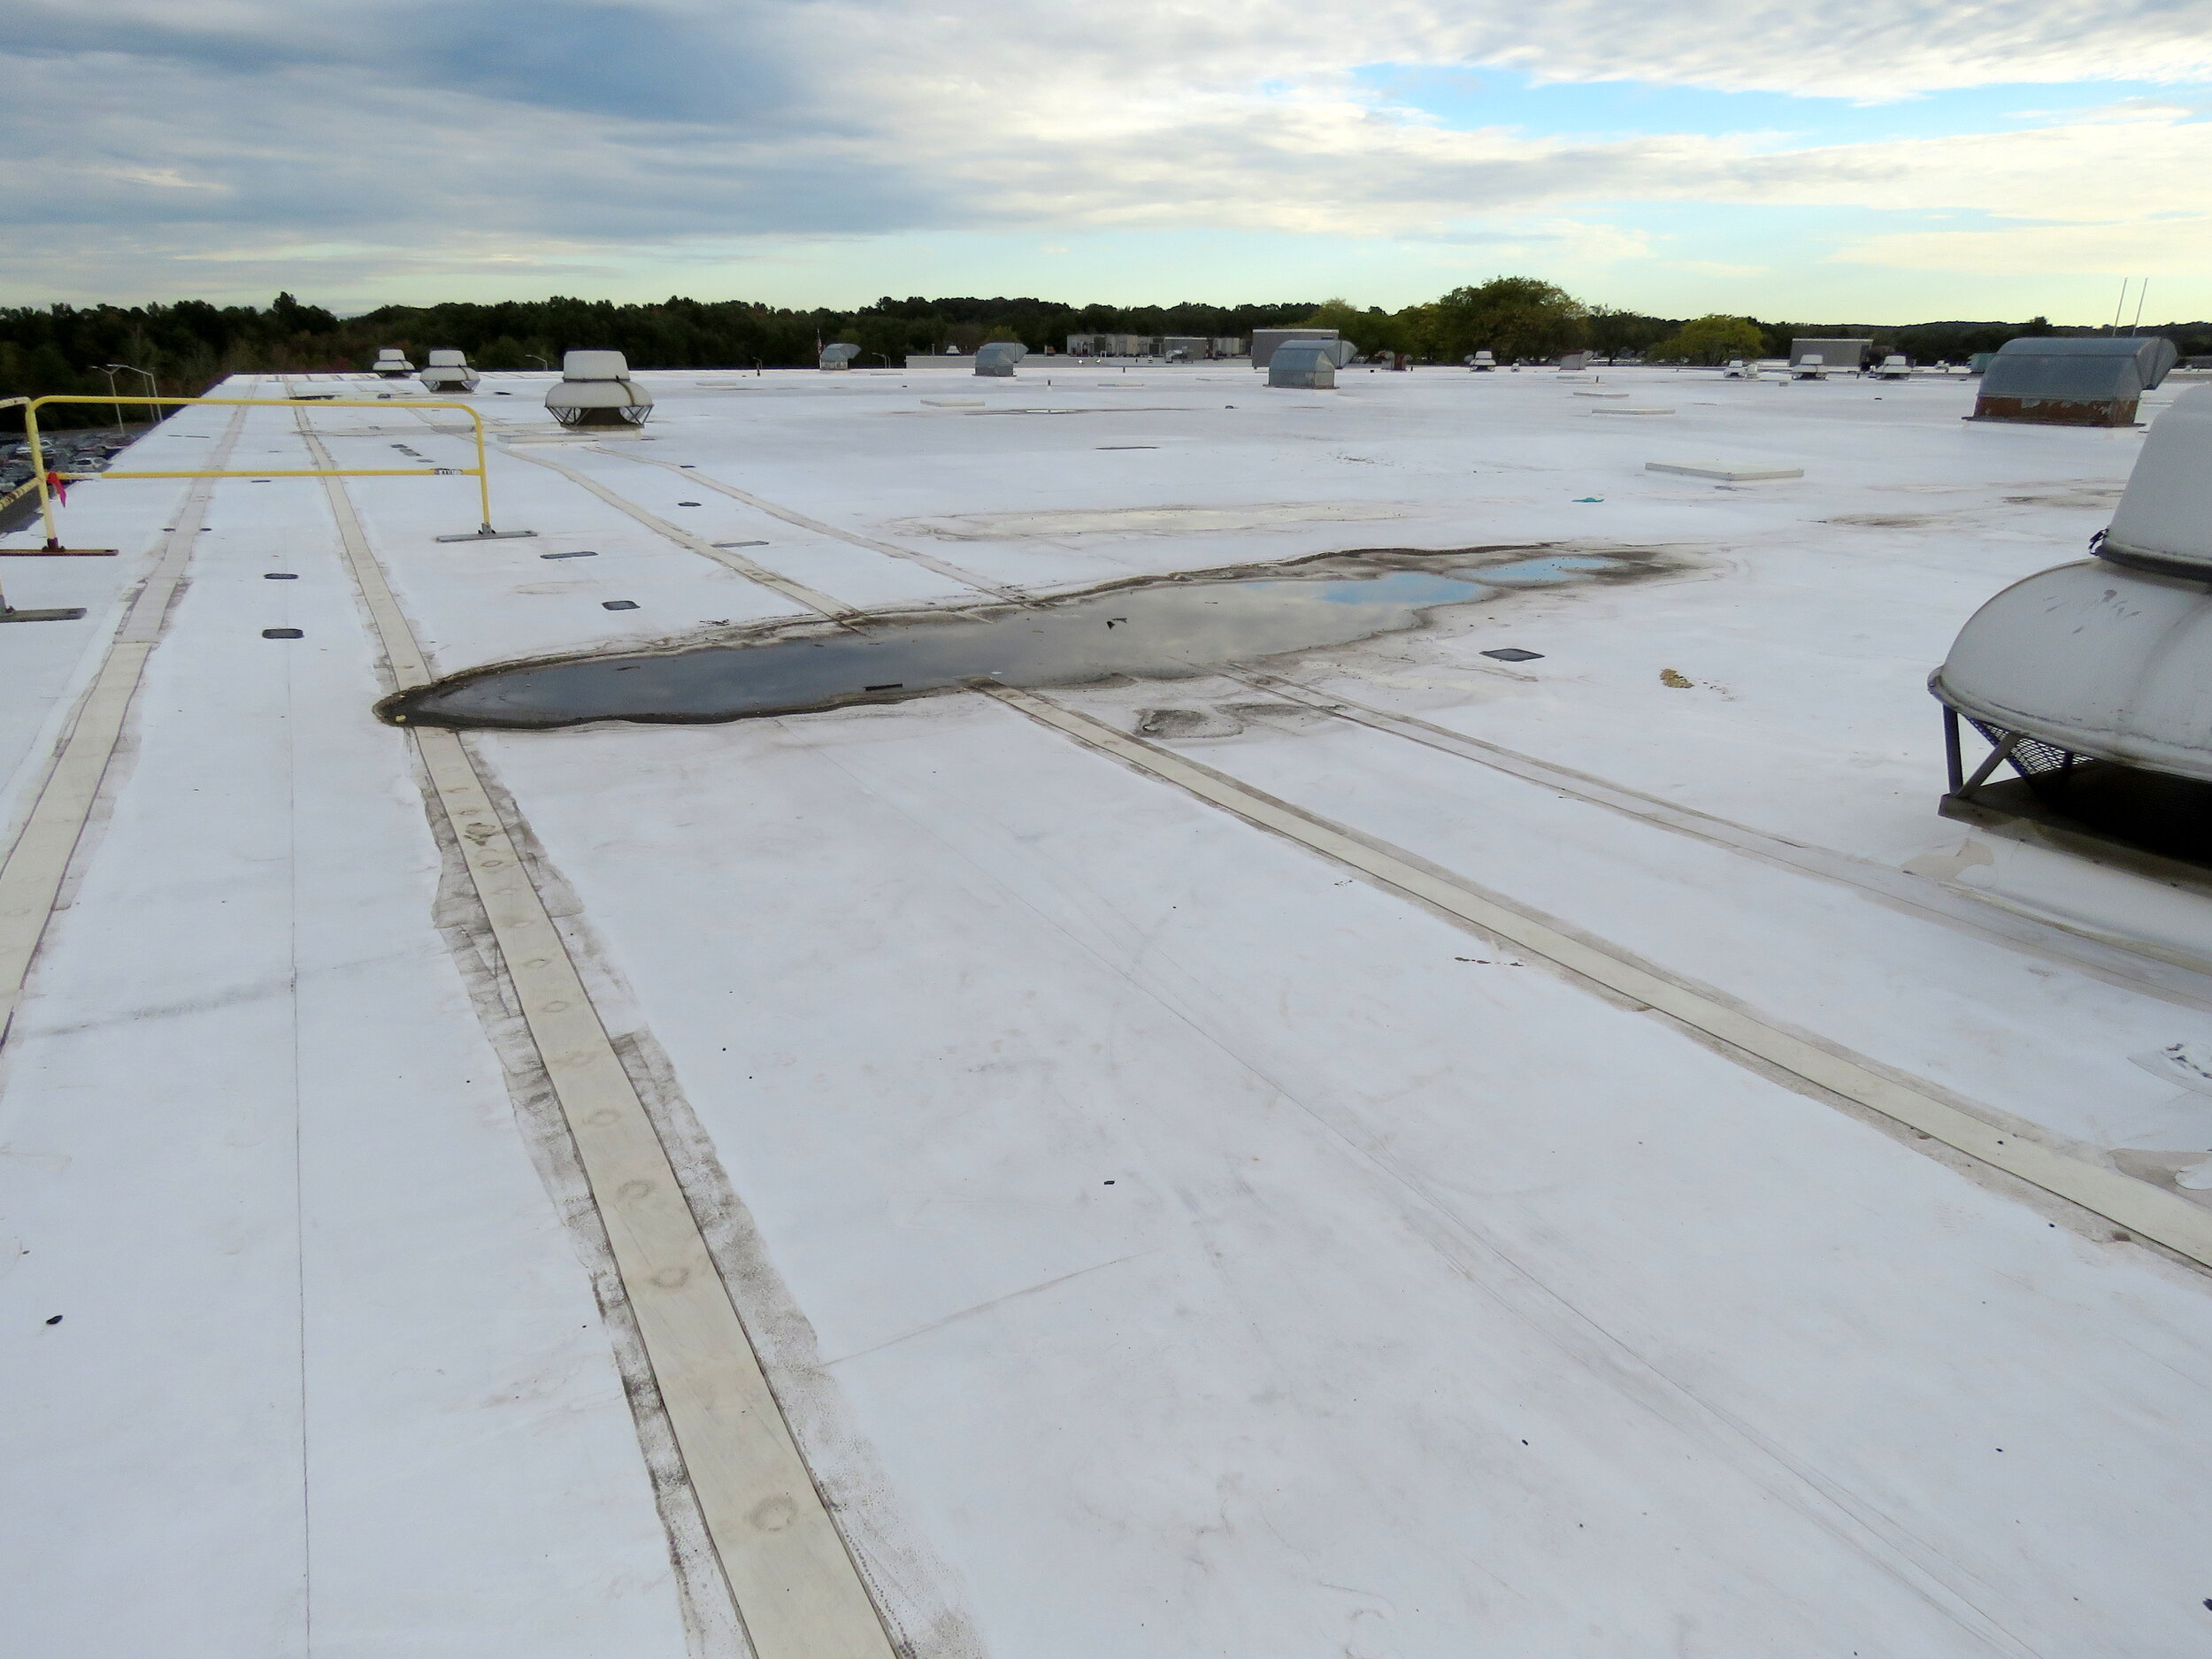 Chronic ponding water on this roof has contributed to permanent deck deflection and discoloration of the white roof membrane.